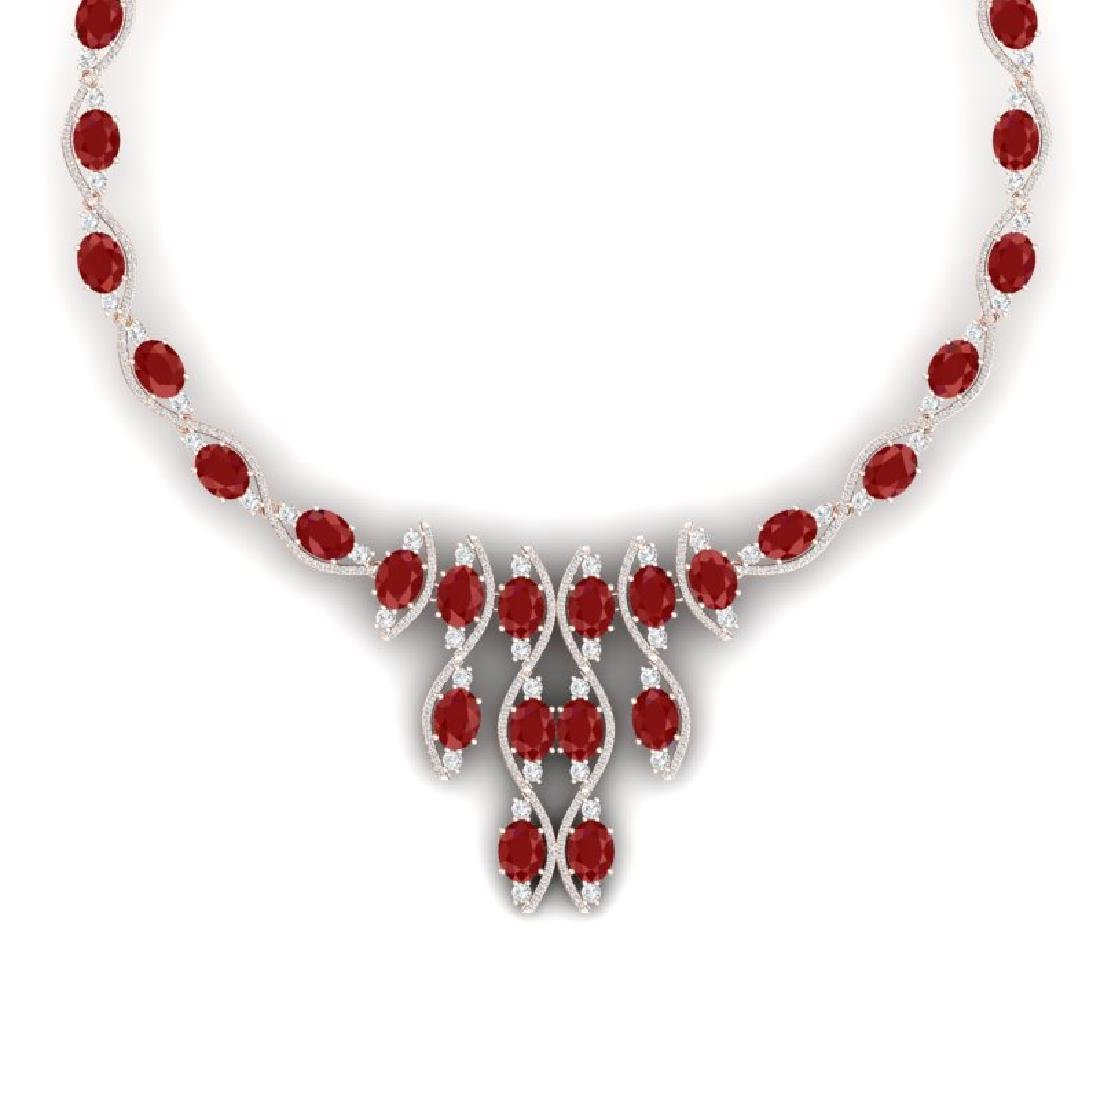 65.93 CTW Royalty Ruby & VS Diamond Necklace 18K Rose - 2